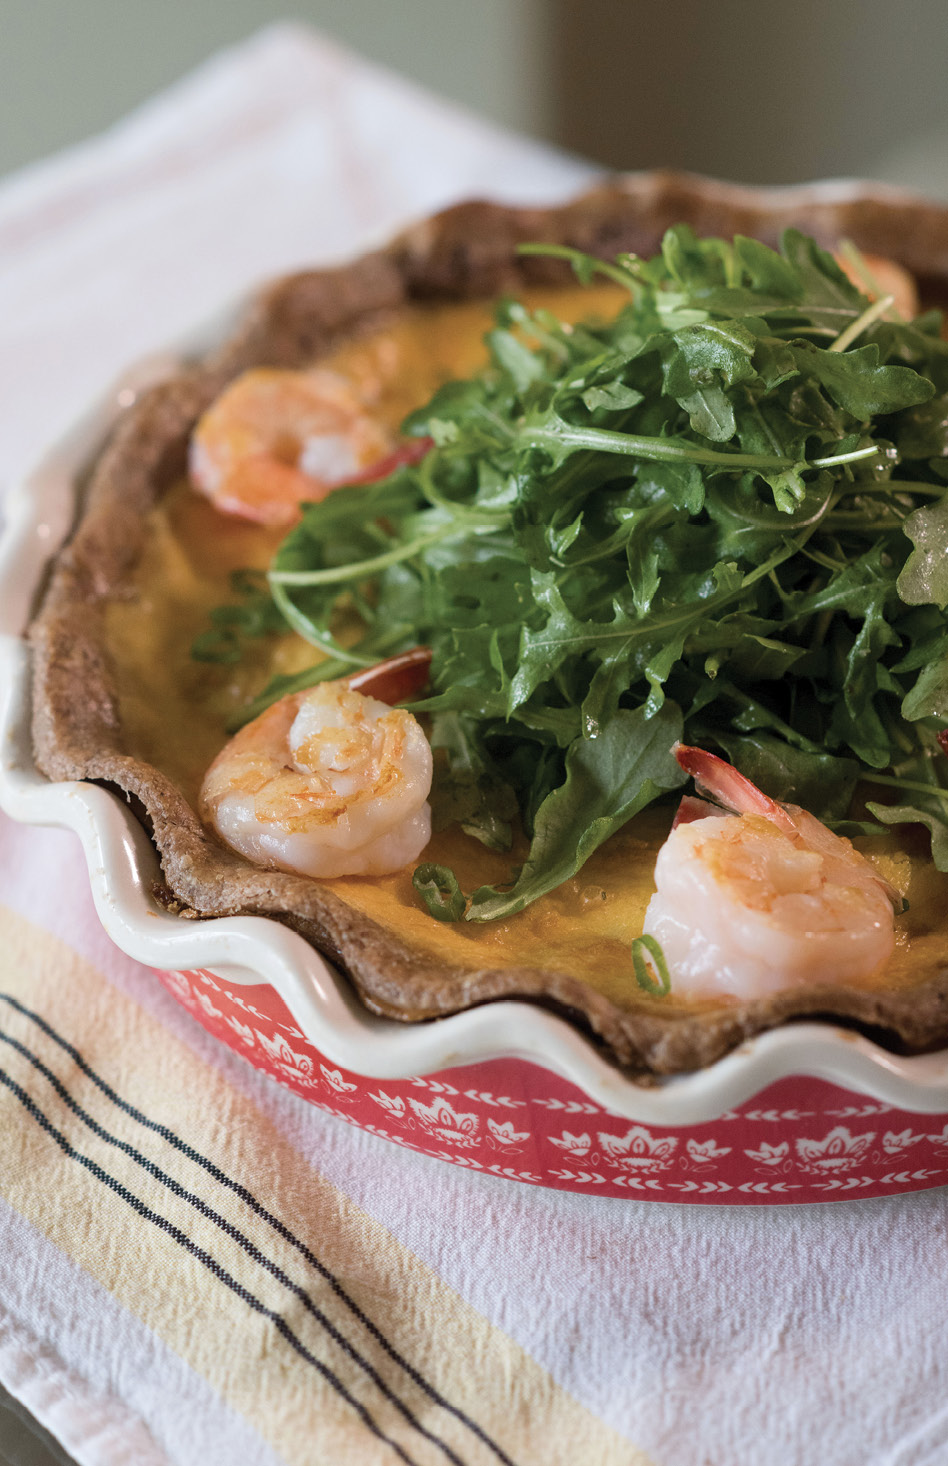 Upchurch saves a few of the shrimp to garnish the quiche; these get cooked a little longer than the rest.